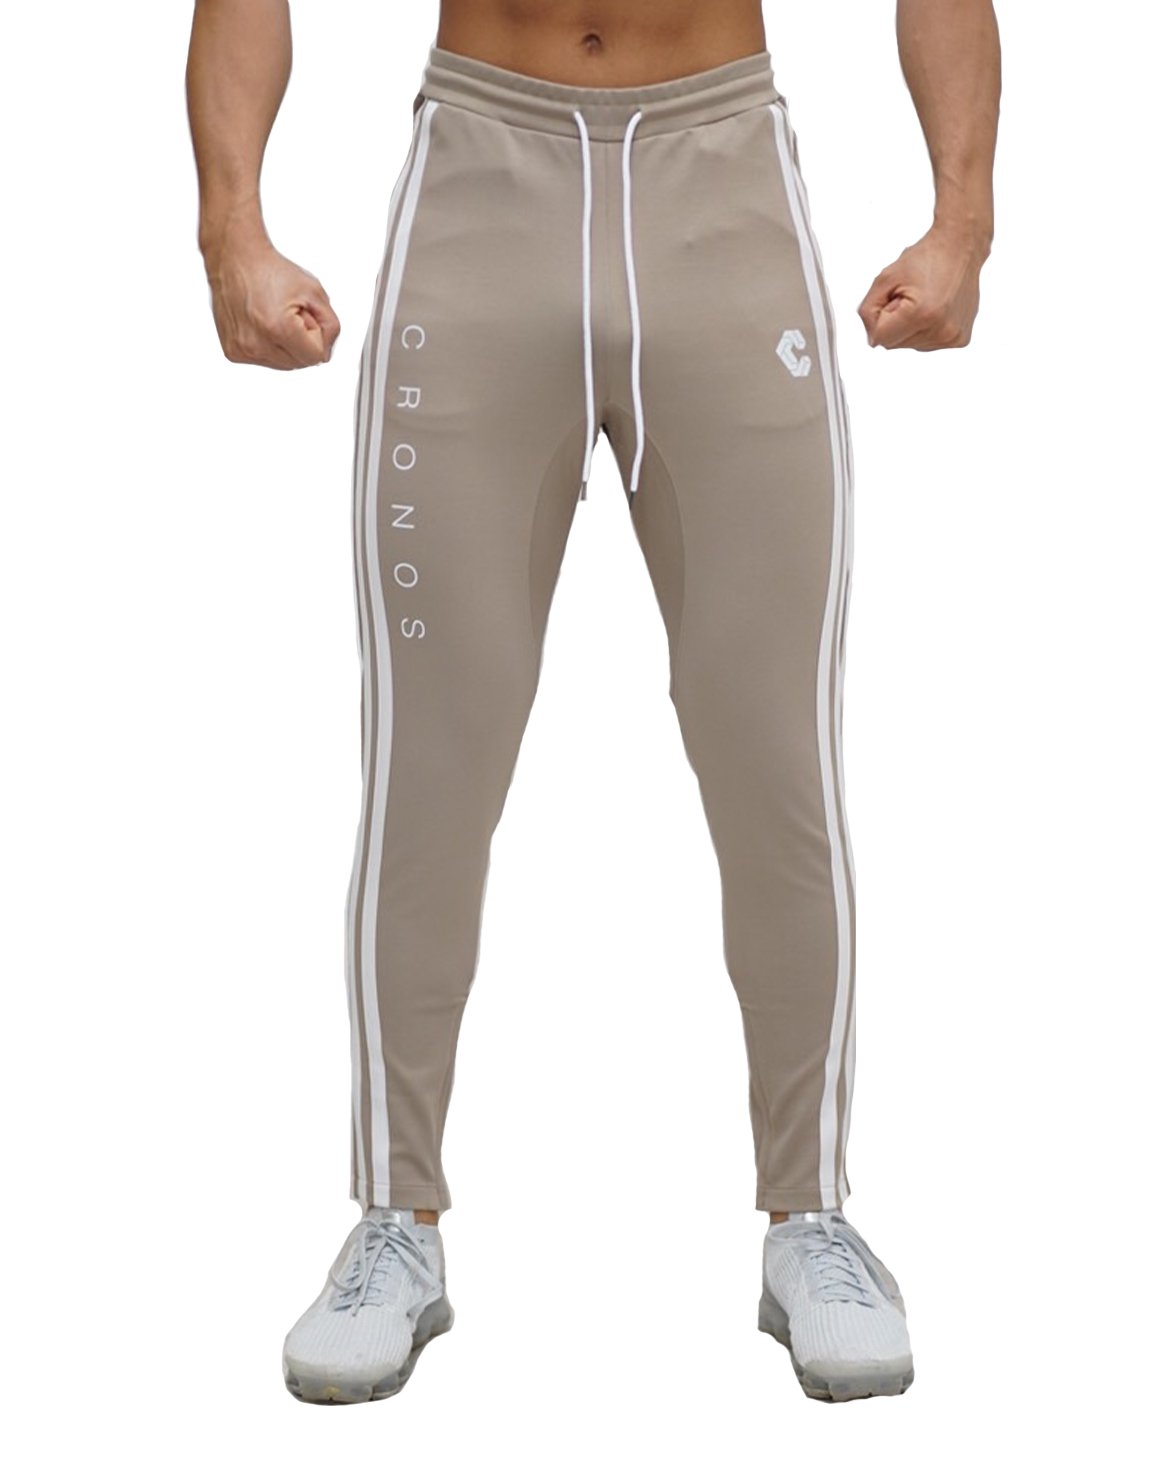 <img class='new_mark_img1' src='https://img.shop-pro.jp/img/new/icons1.gif' style='border:none;display:inline;margin:0px;padding:0px;width:auto;' />MODE SIDE 2STRIPE PANTS 【BEIGE】